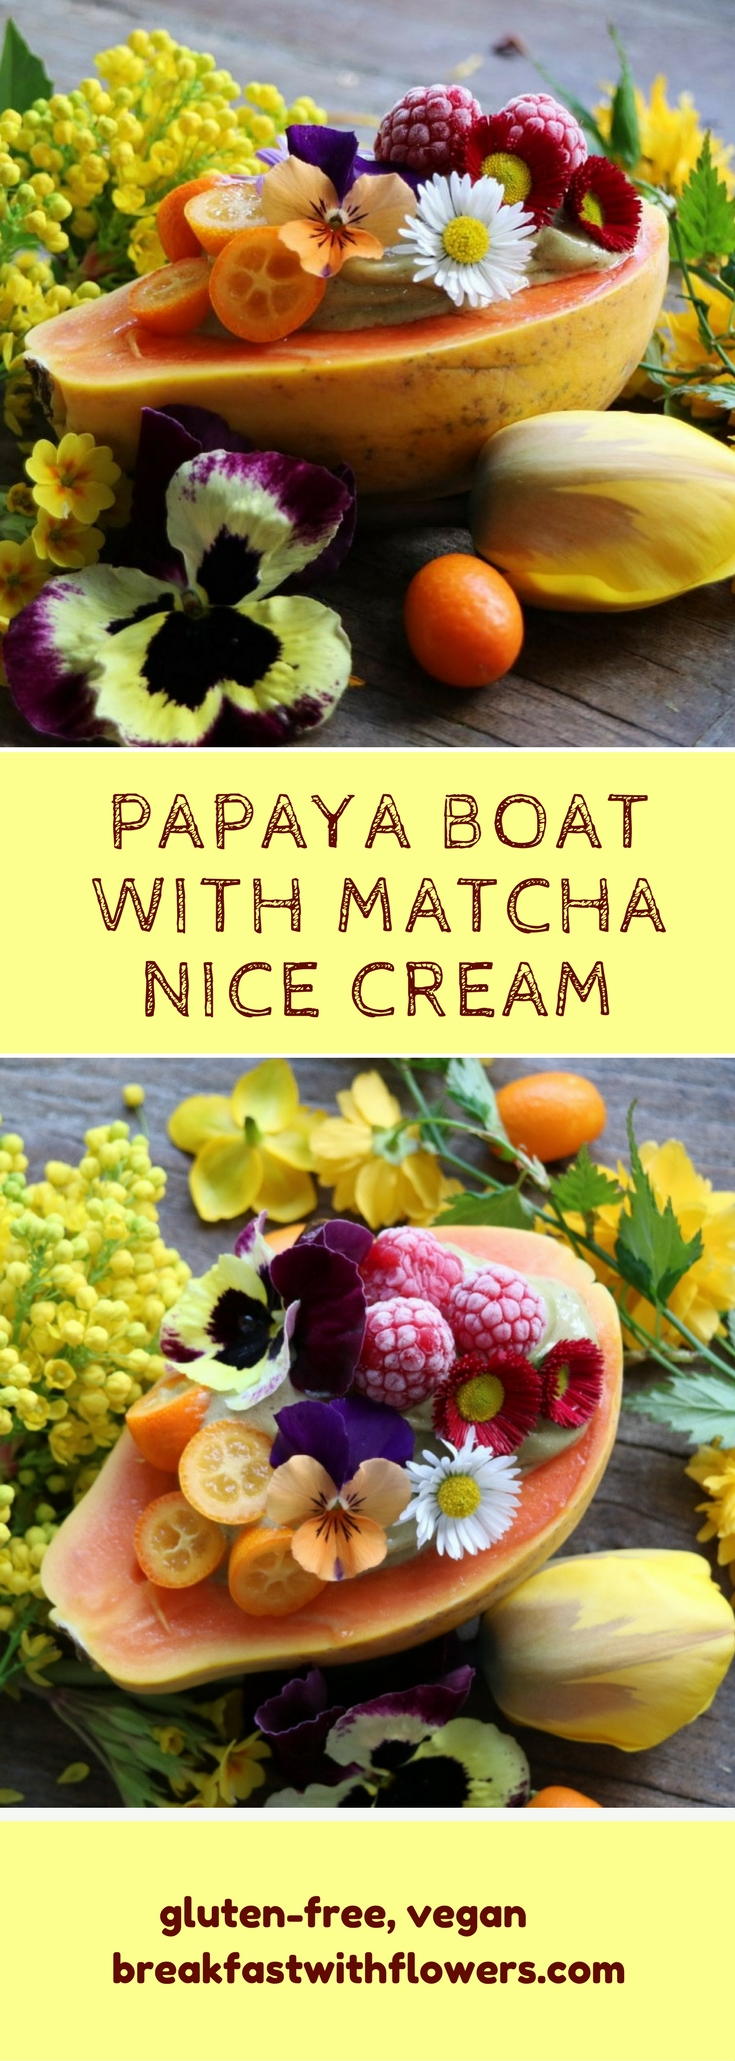 Papaya Boat with Matcha Nice Cream. Simple, two-ingredient recipes. Gluten-free, sugar-free, vegan. More recipes on breakfastwithflowers.com